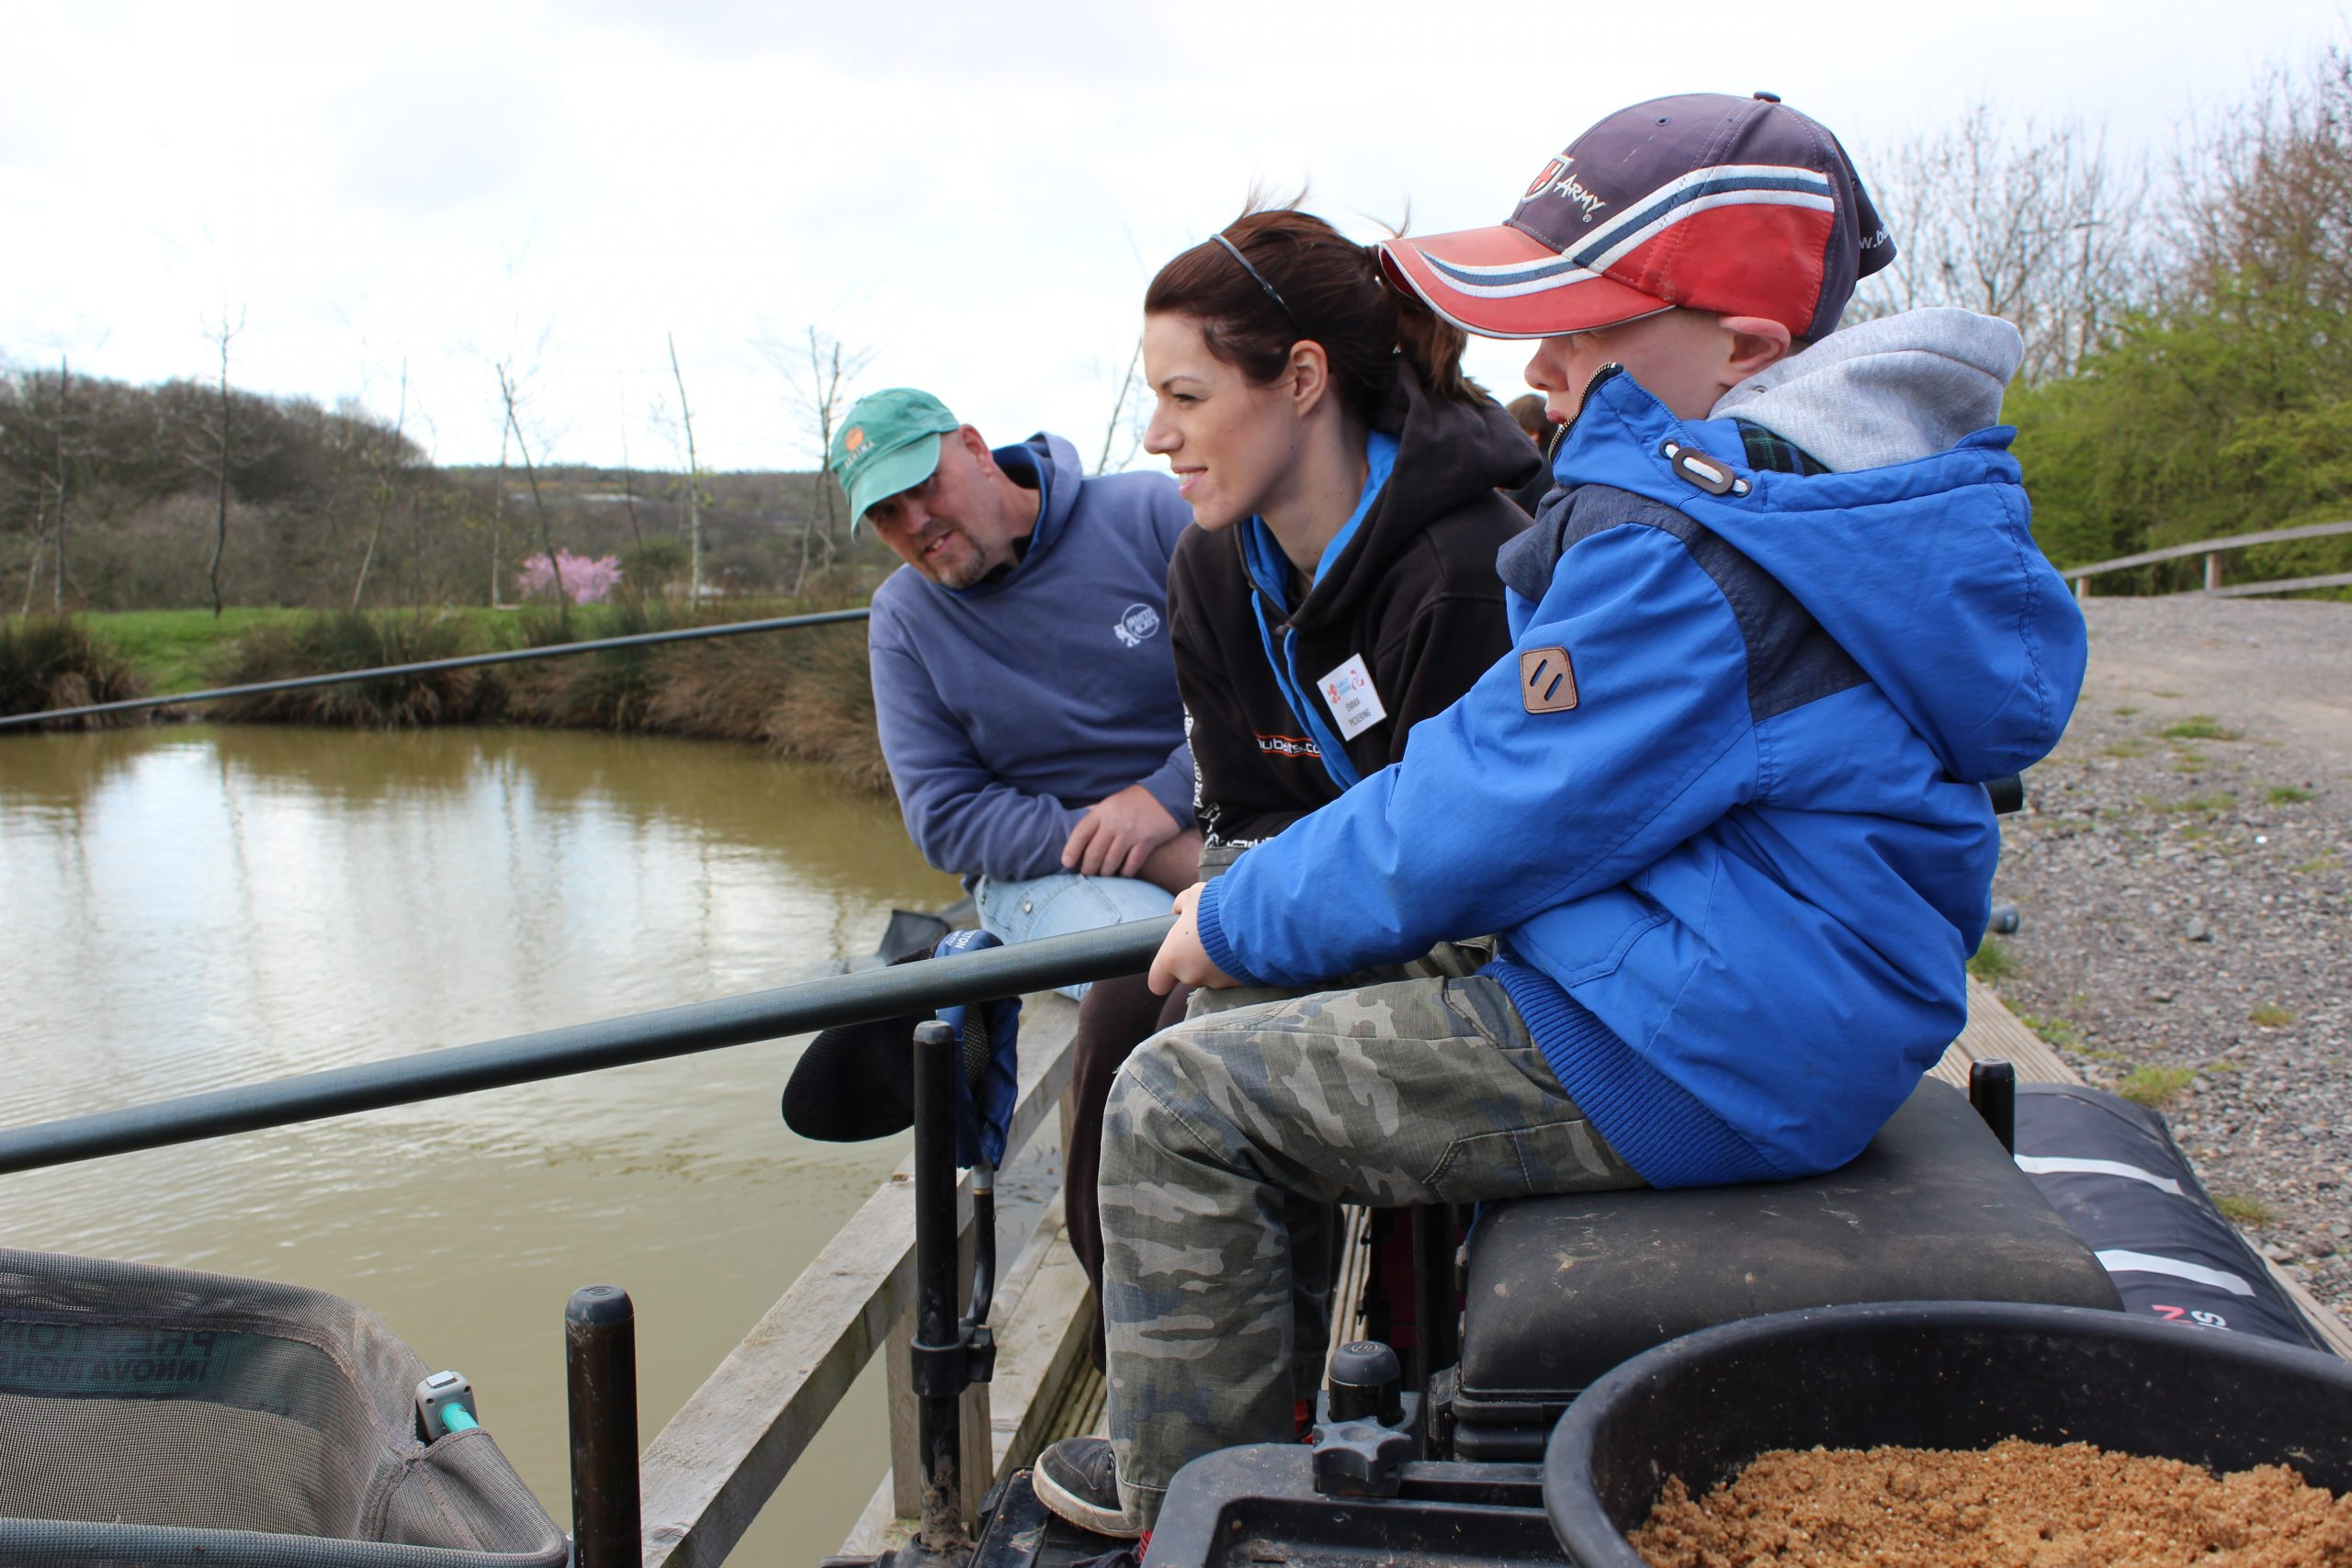 Get Fishing - coach and angler at event-4